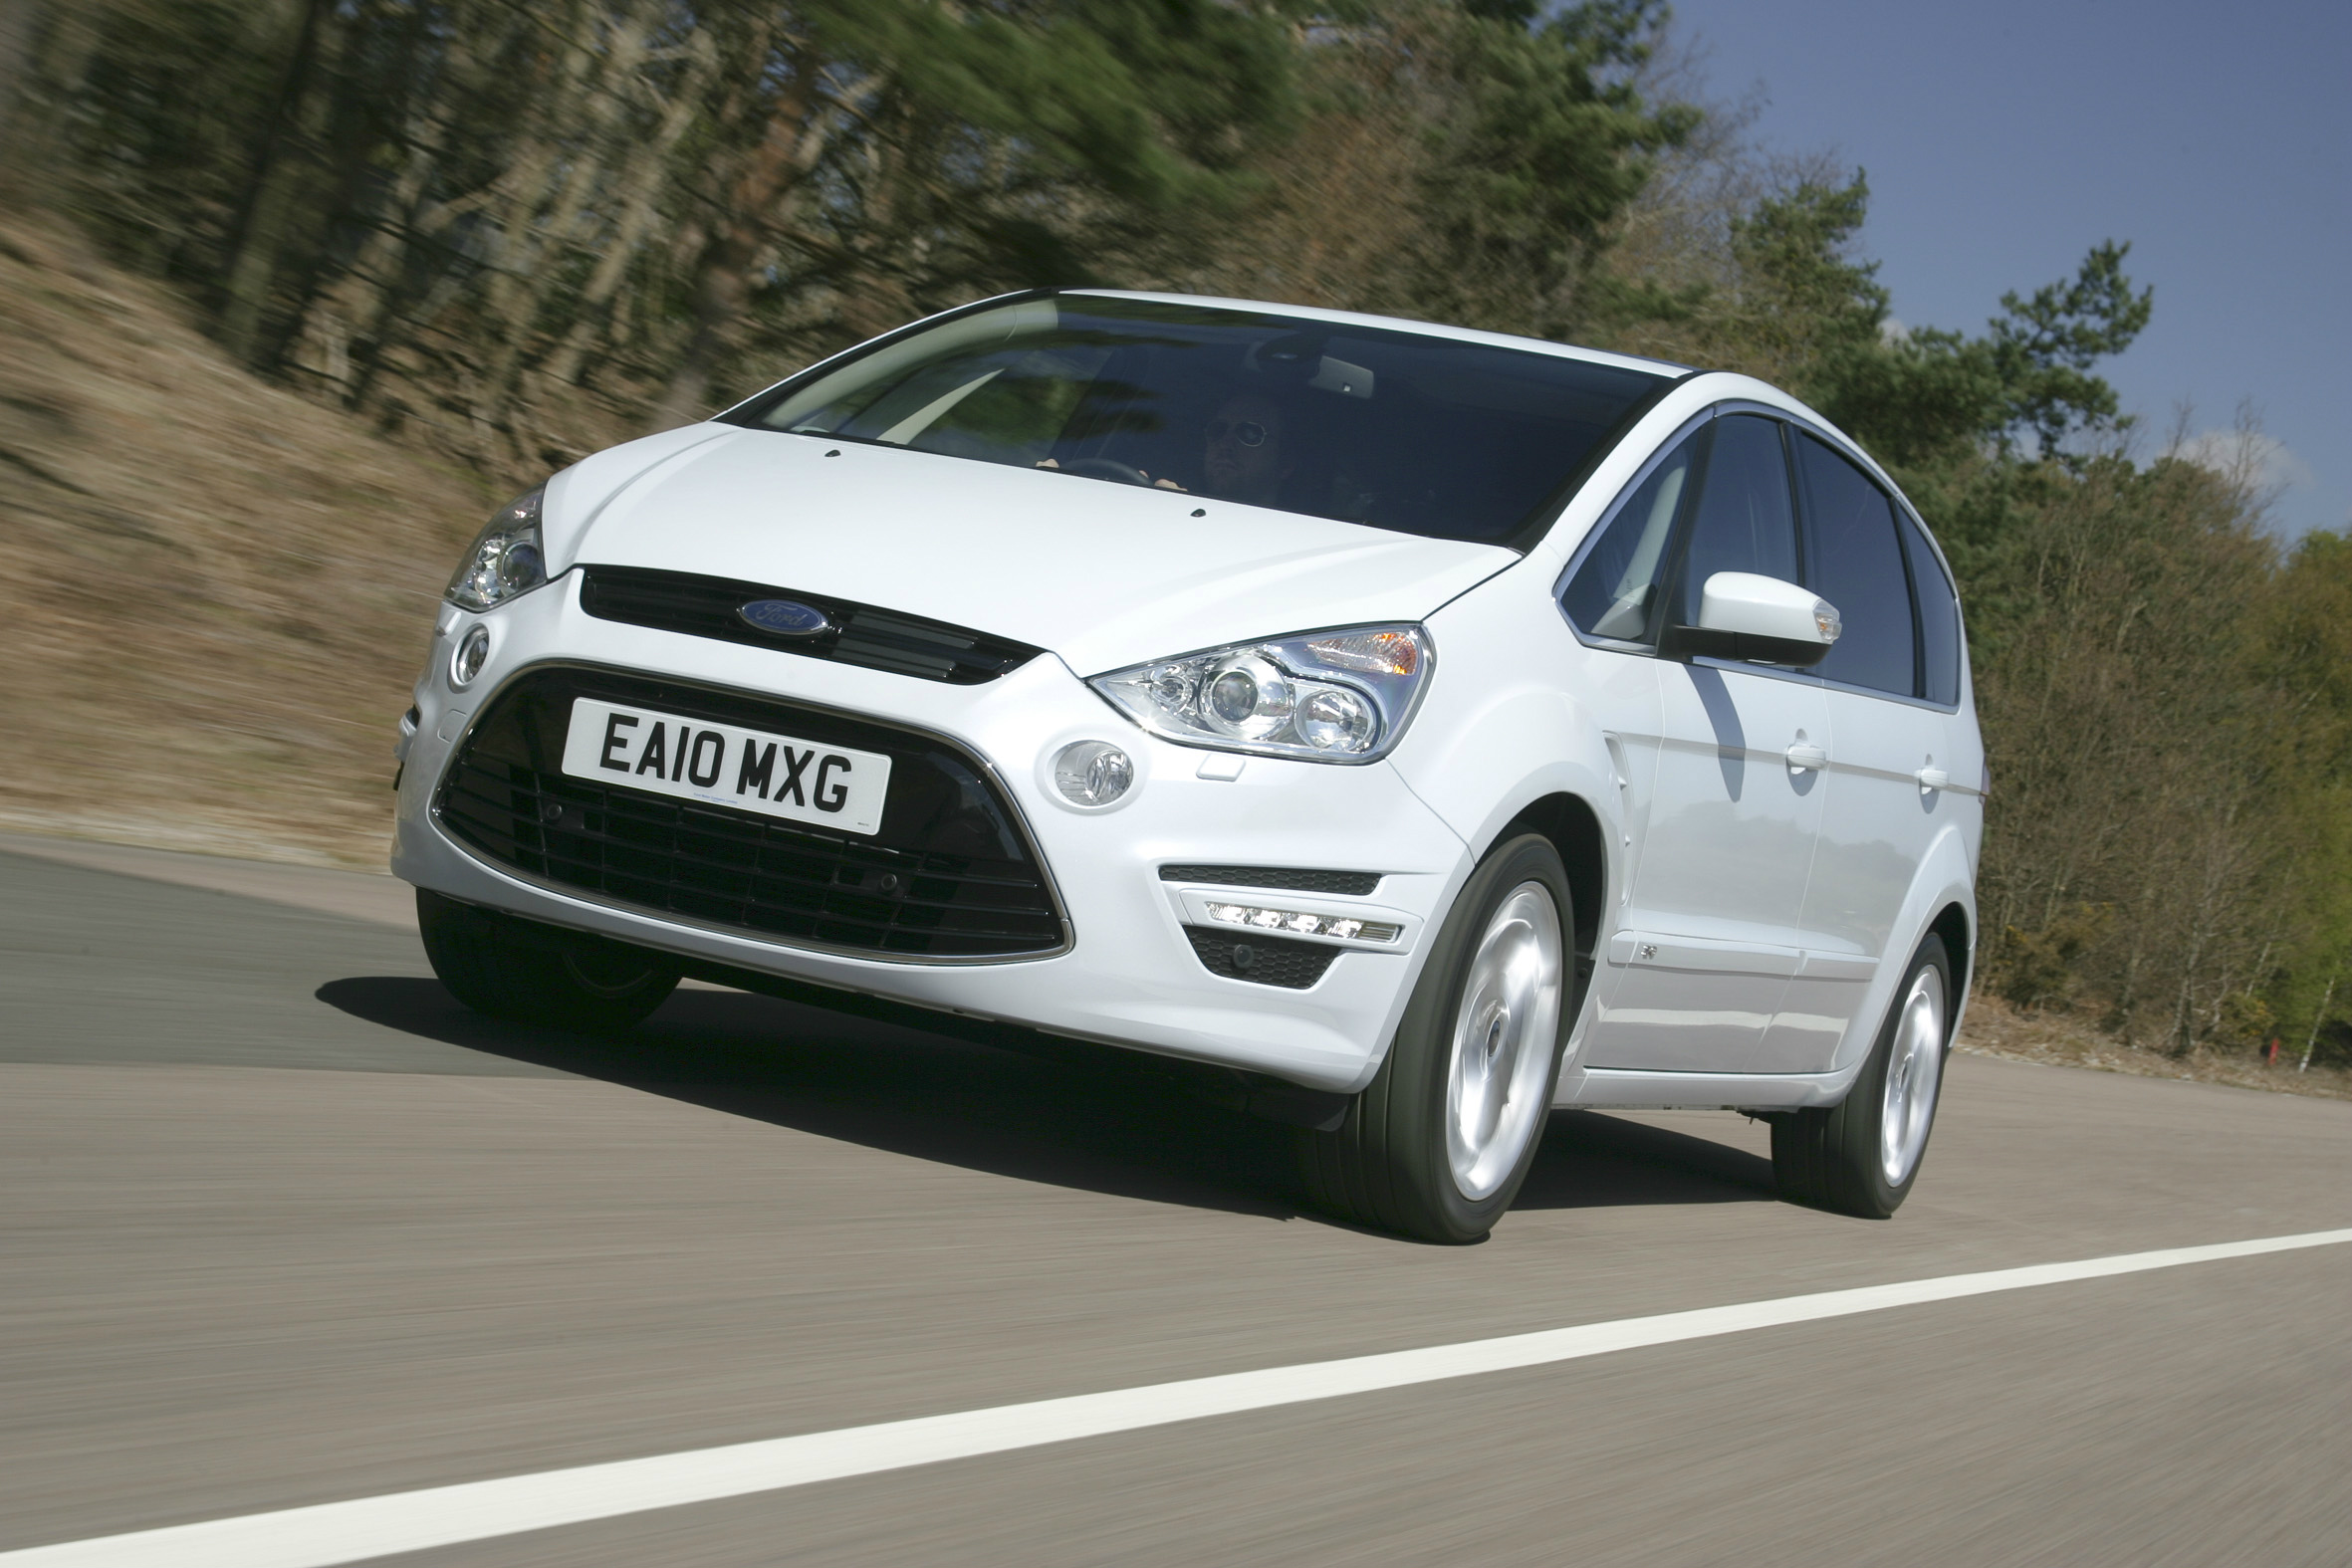 Best used seven-seat family cars Ford S-Max is best to drive & Used car buying guide: 7-seat family car for £15k - Green Flag markmcfarlin.com